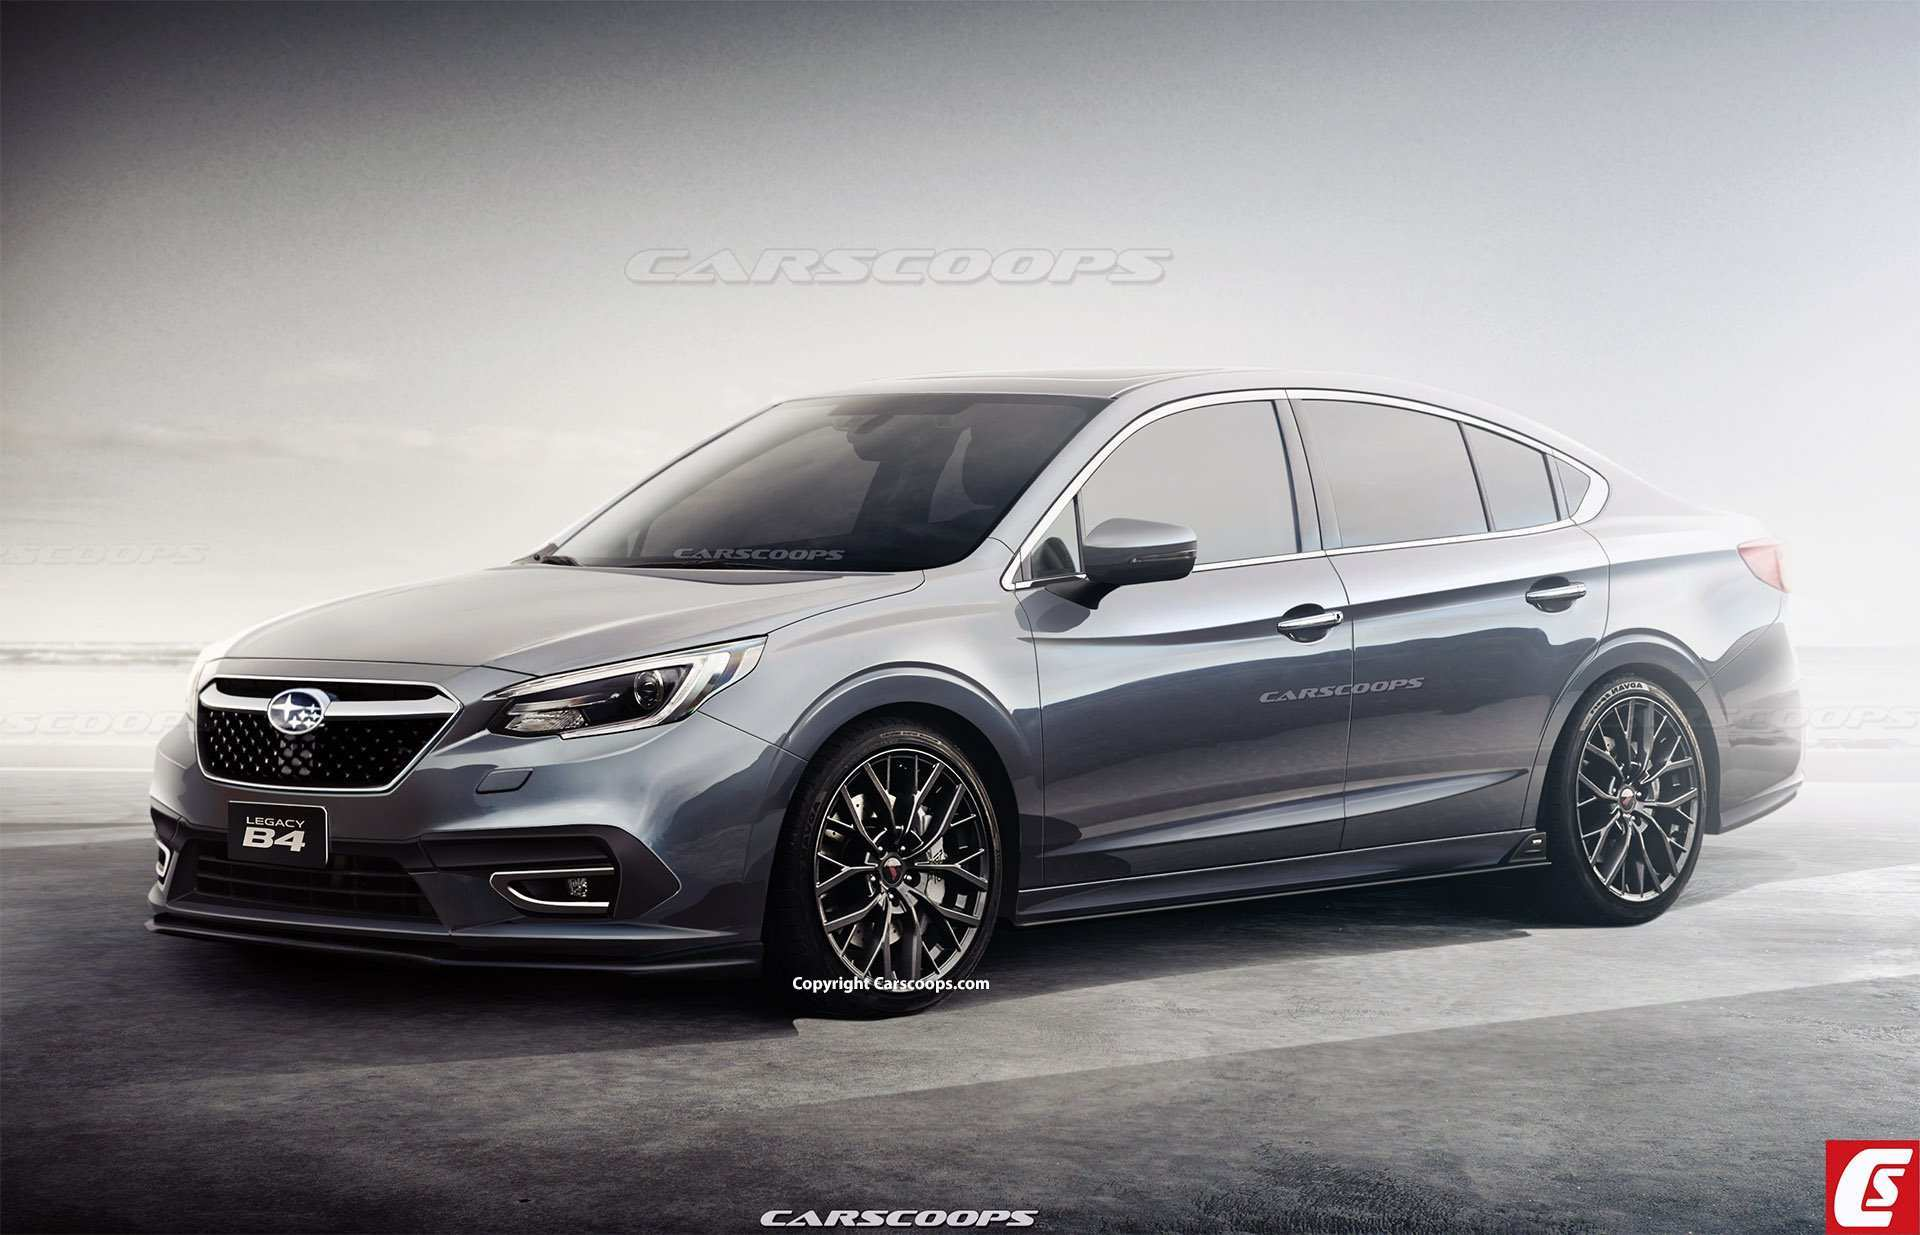 90 All New Subaru Legacy 2020 Redesign Release